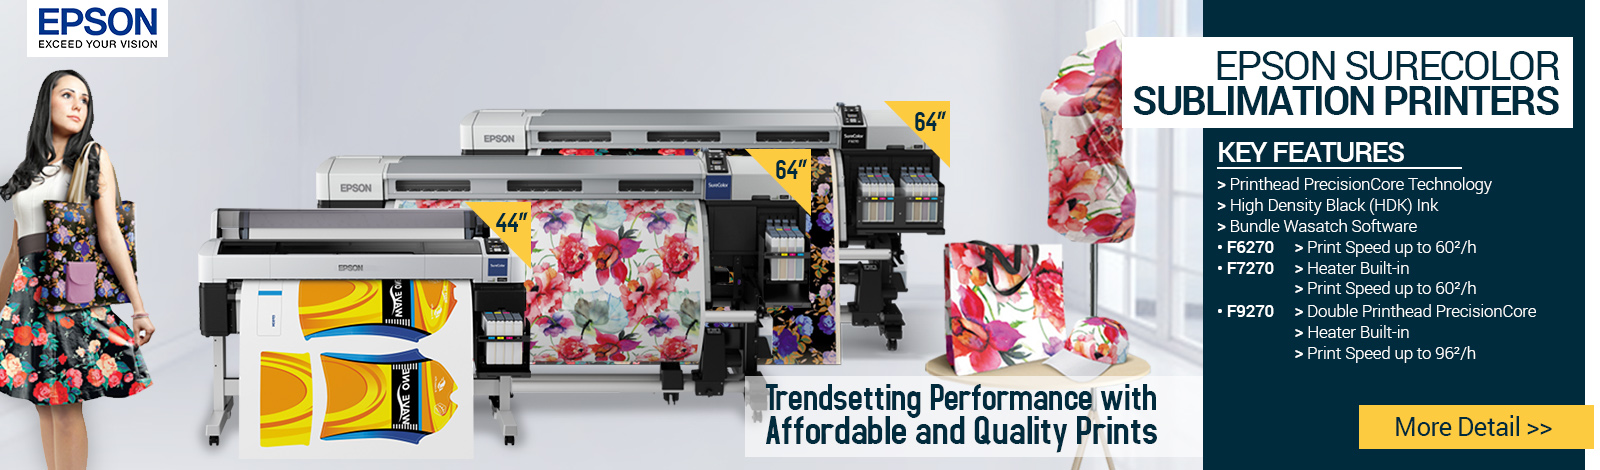 epson surecolor sublimation printers slider